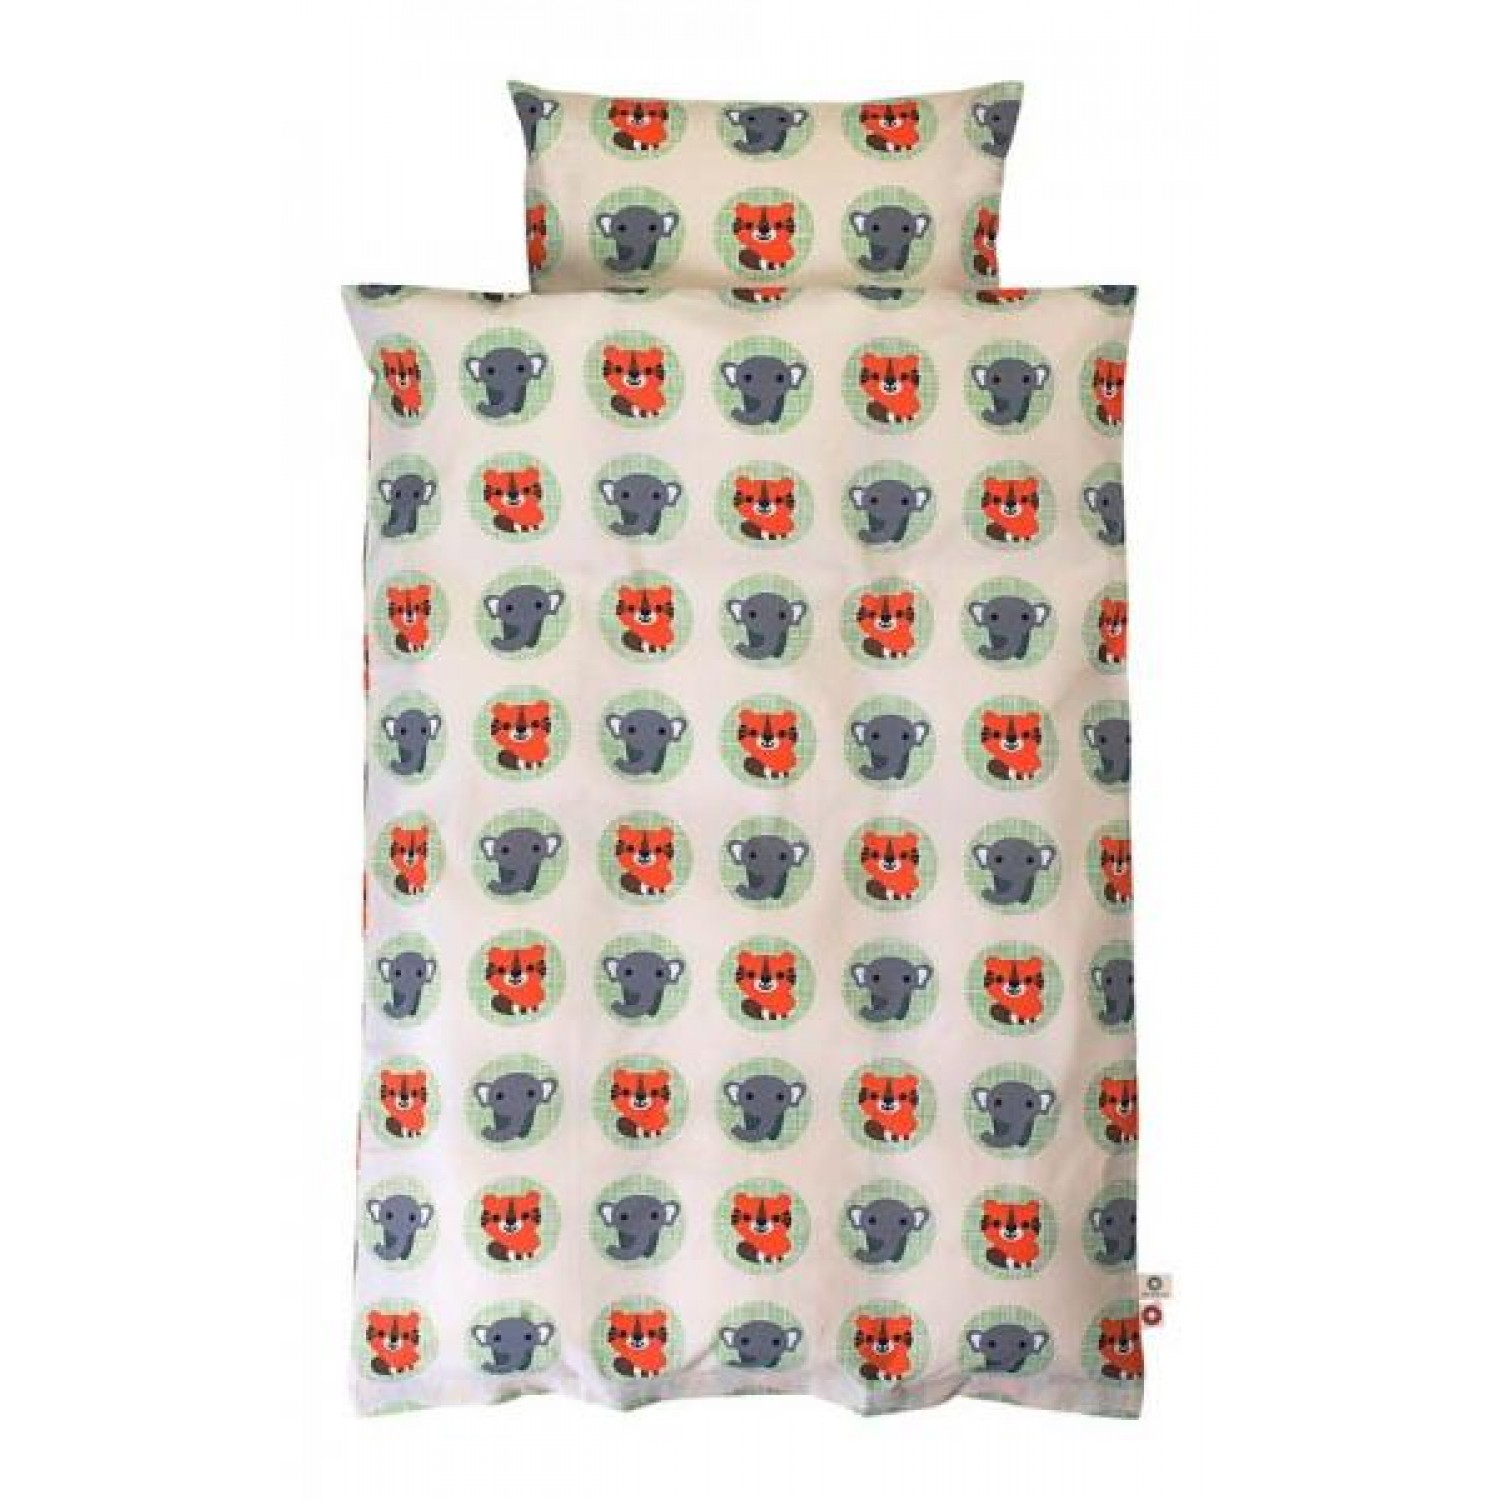 Children Bedlinen Solvej 100x135 cm Organic Cotton